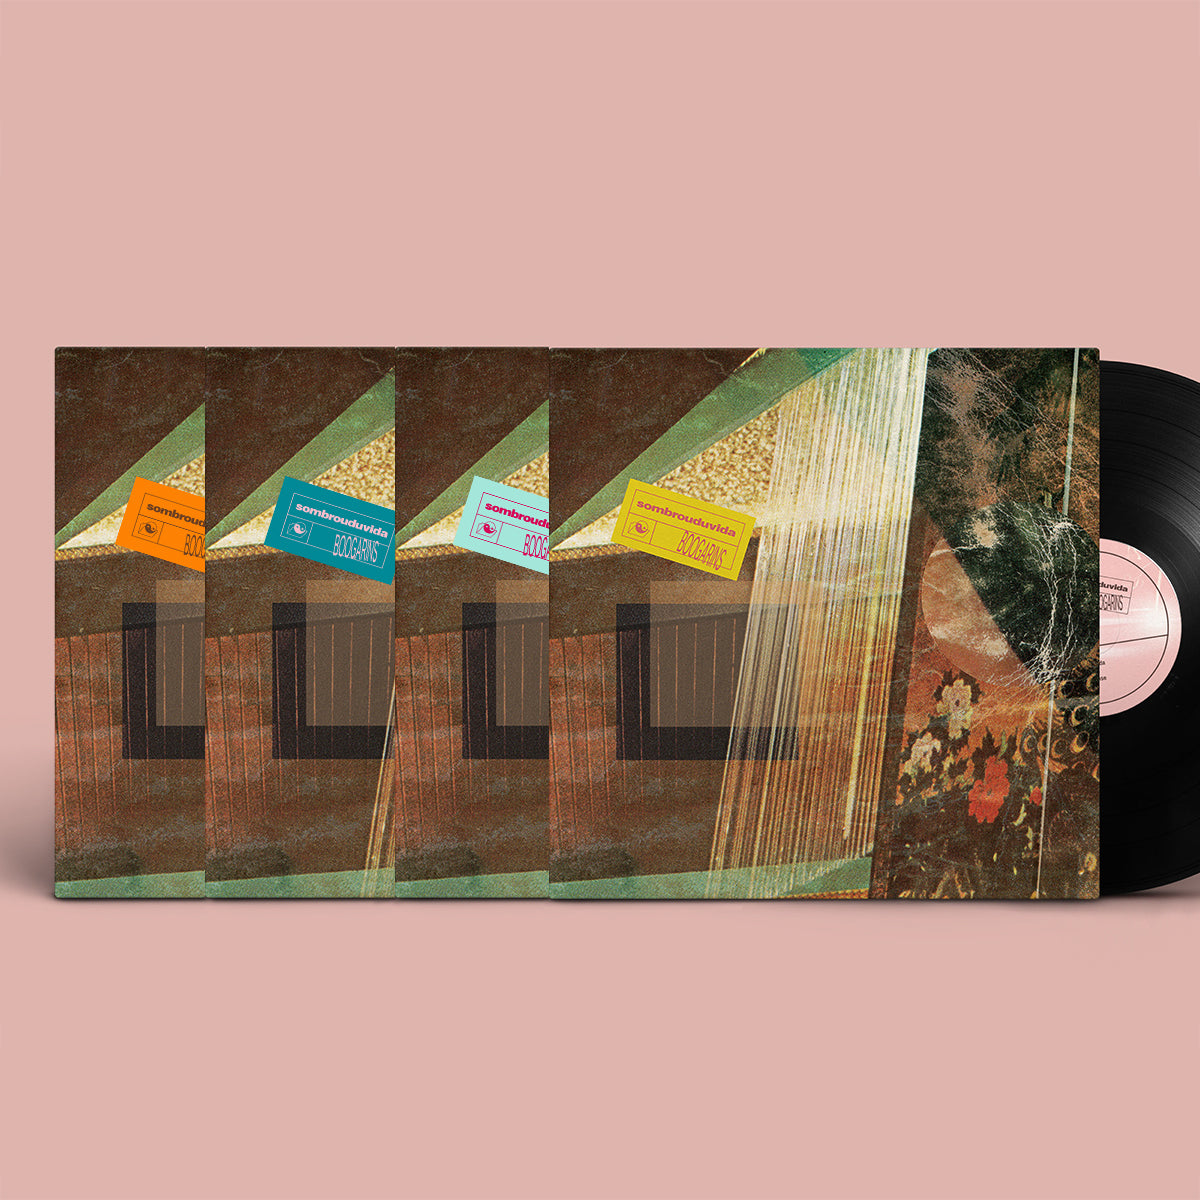 Boogarins - Sombrou Dúvida BUNDLE - (4X LP + Digital Download)